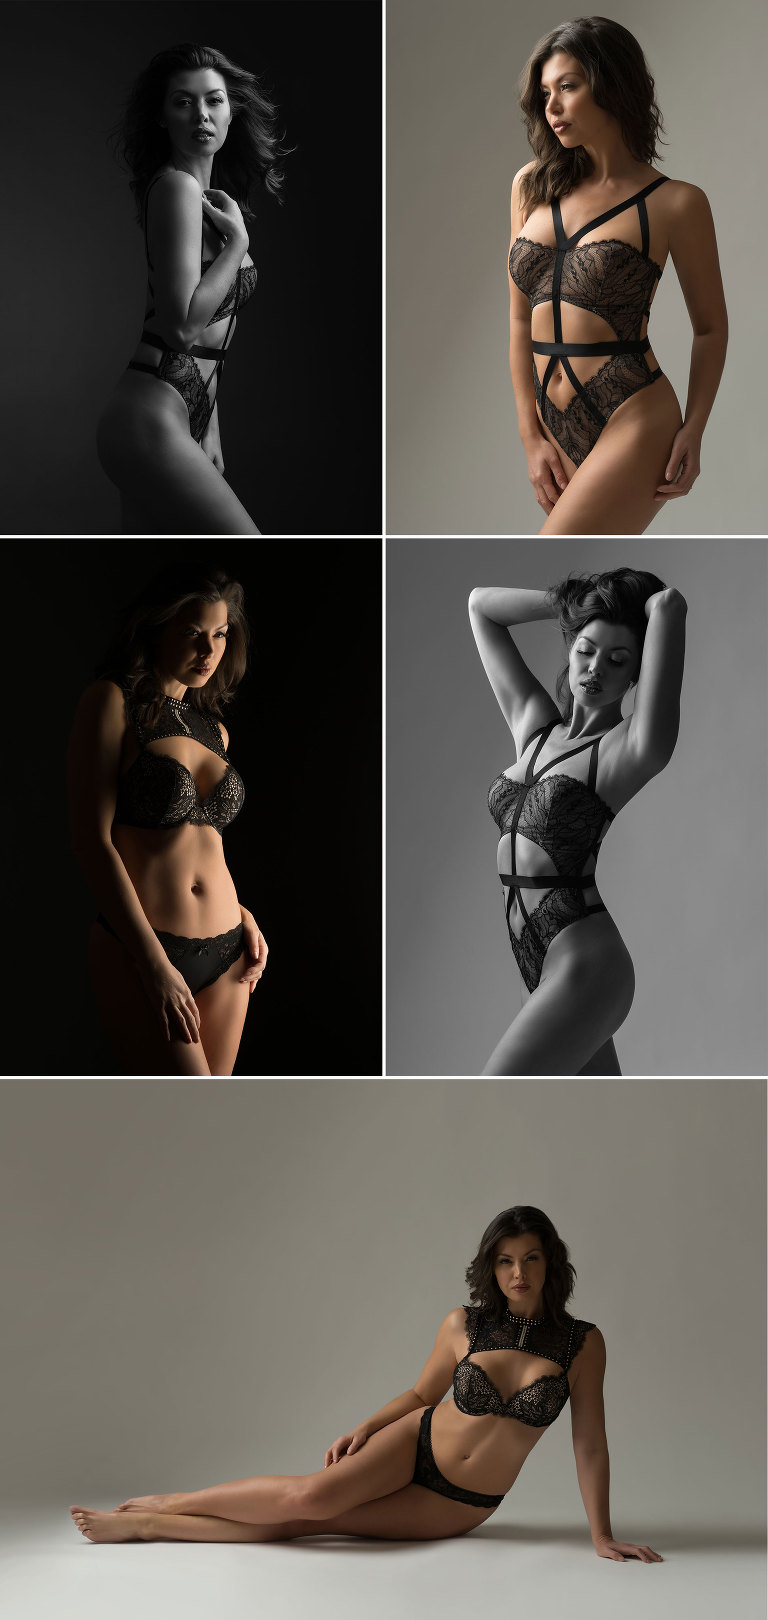 premier nyc boudoir photography studio manhattan